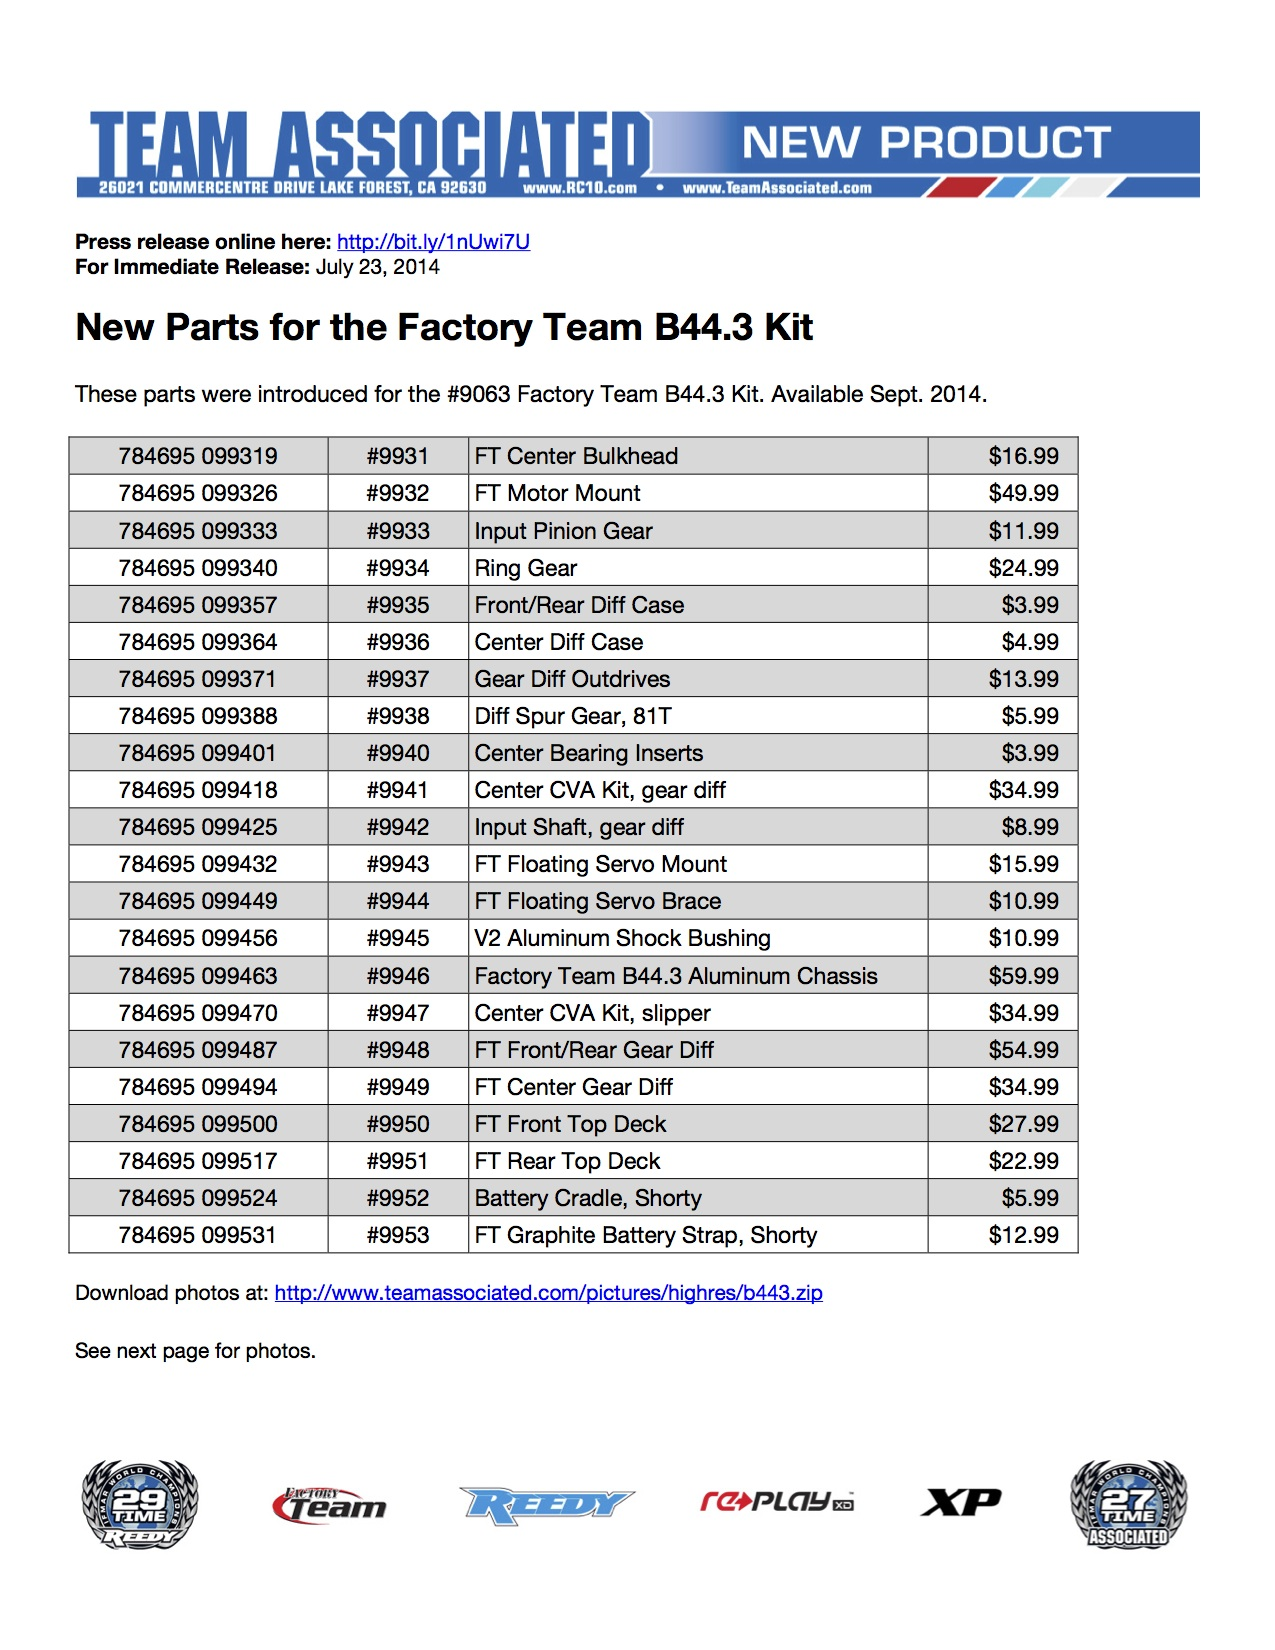 New Parts That Make Up Team Associated S Still Unreleased